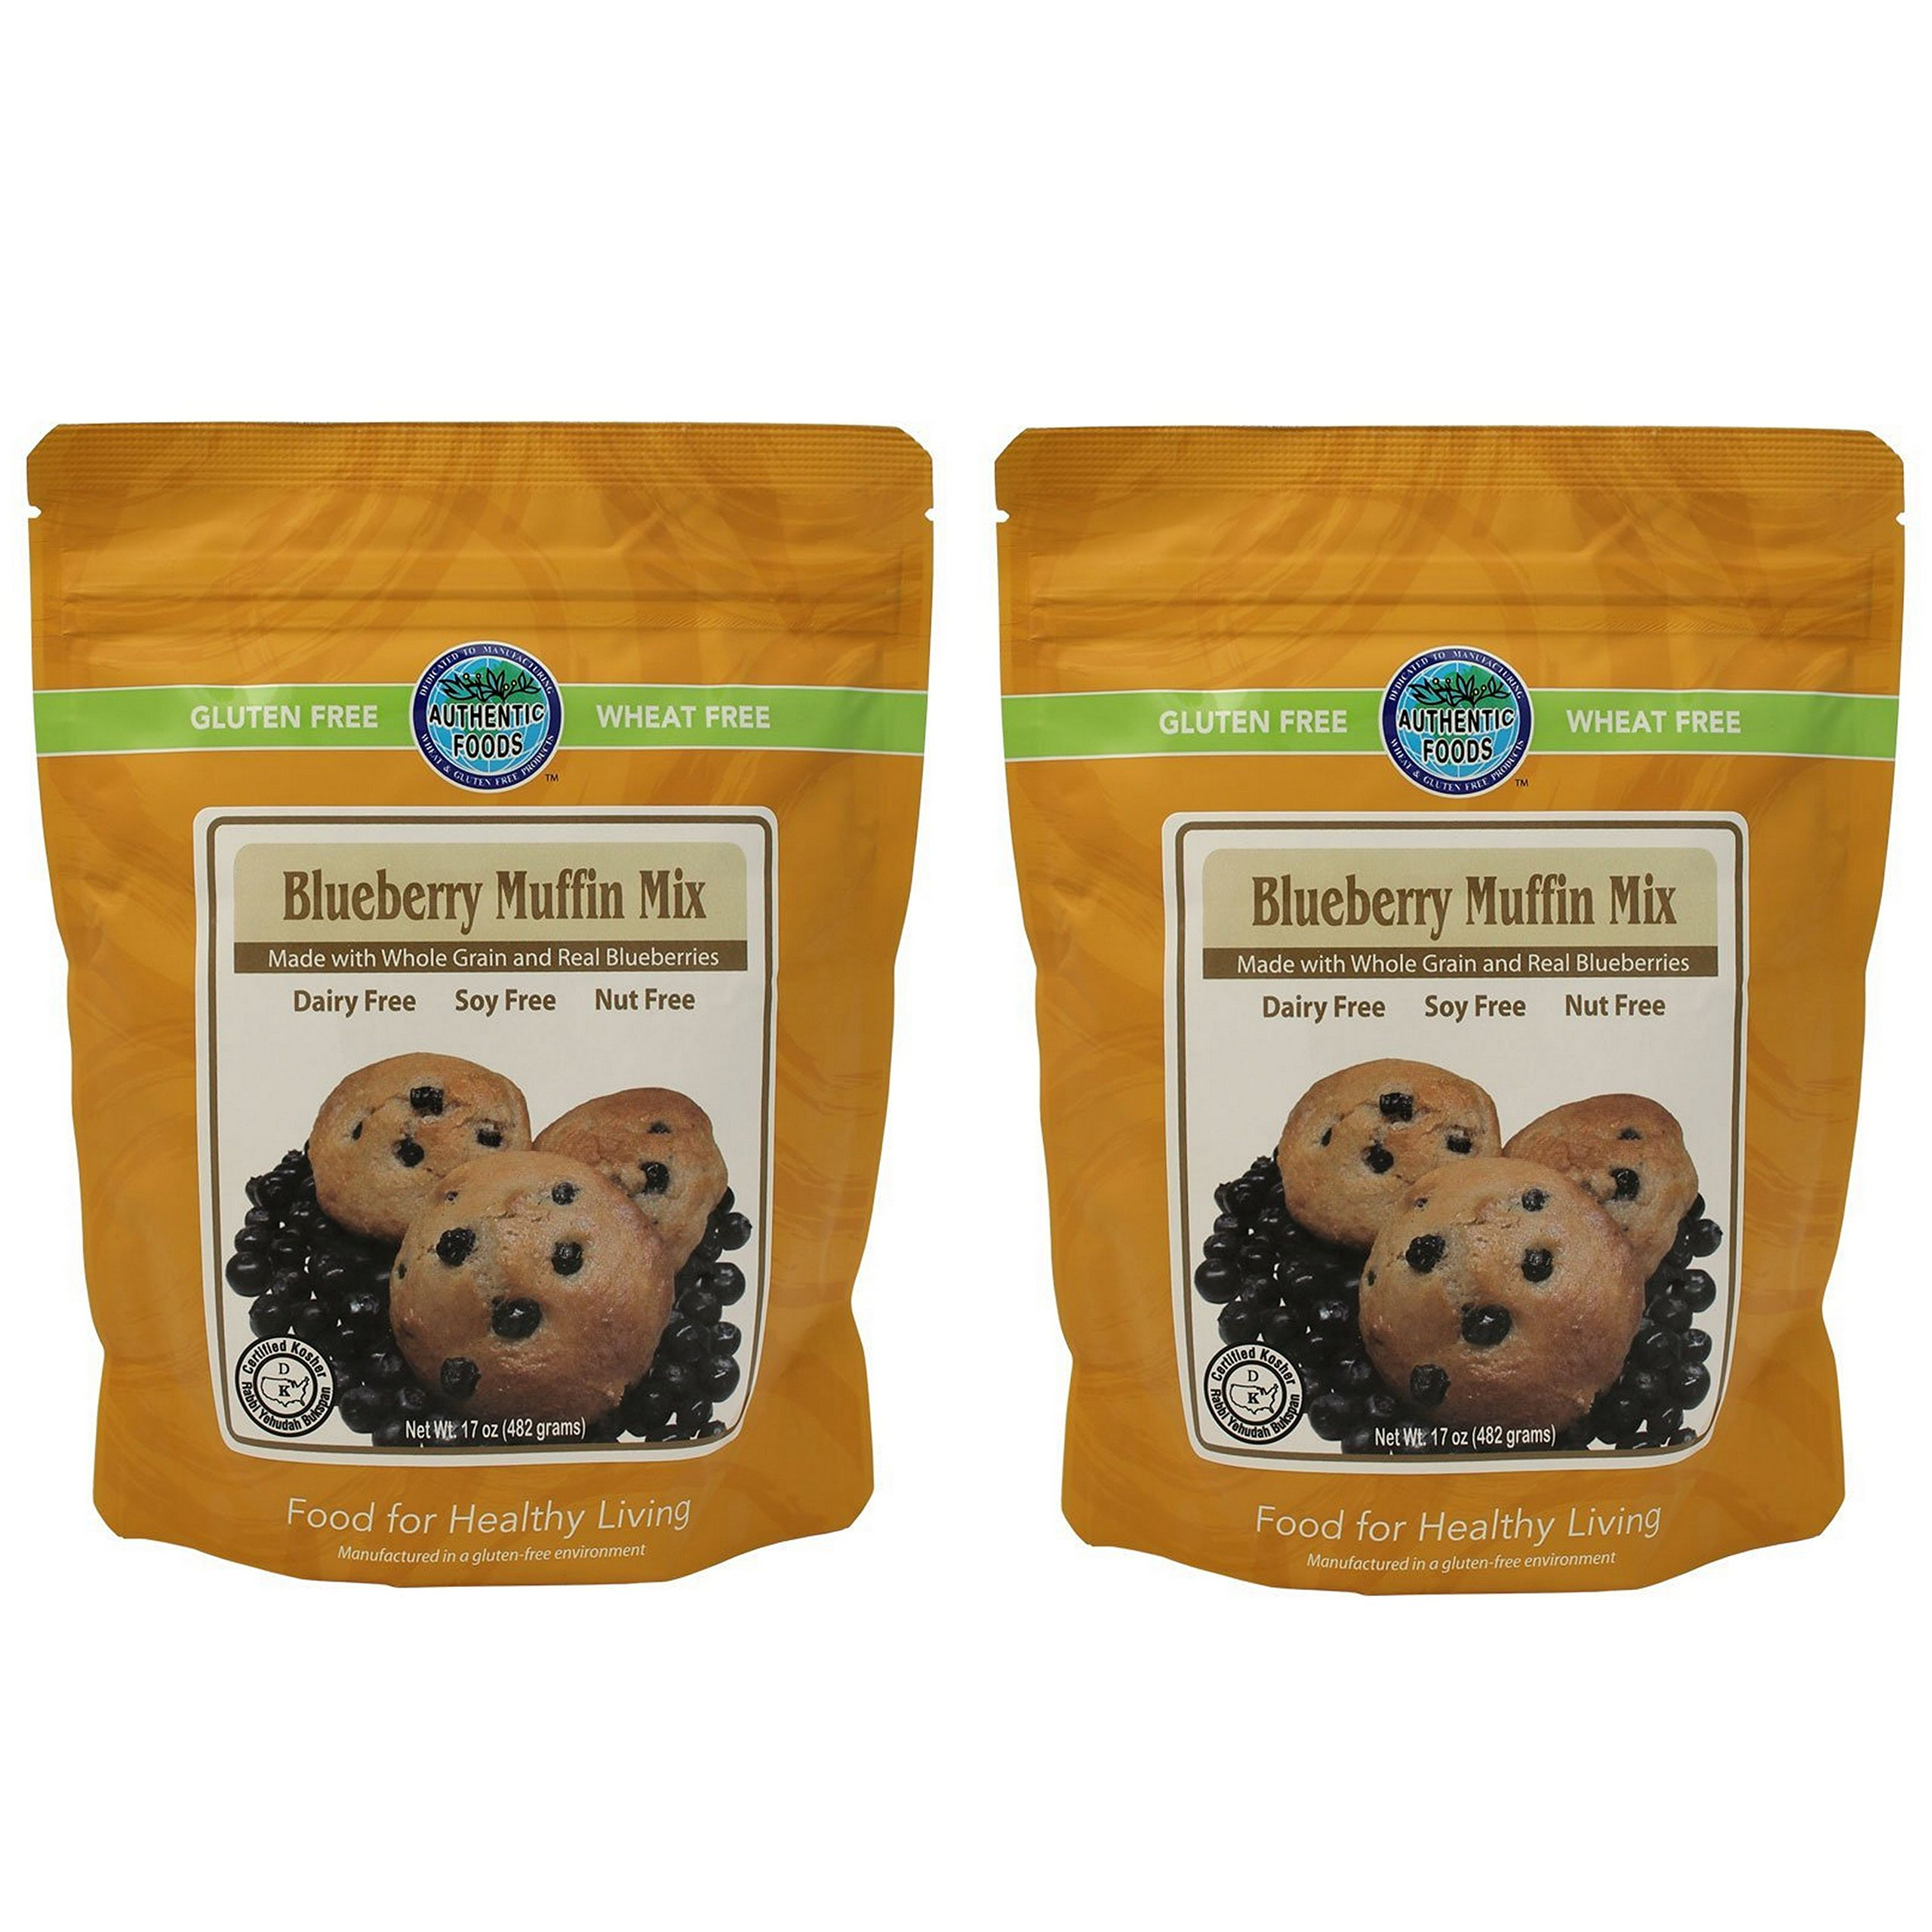 Authentic Foods Gluten Free Blueberry Muffin Mix - 2 Pack by Authentic Foods